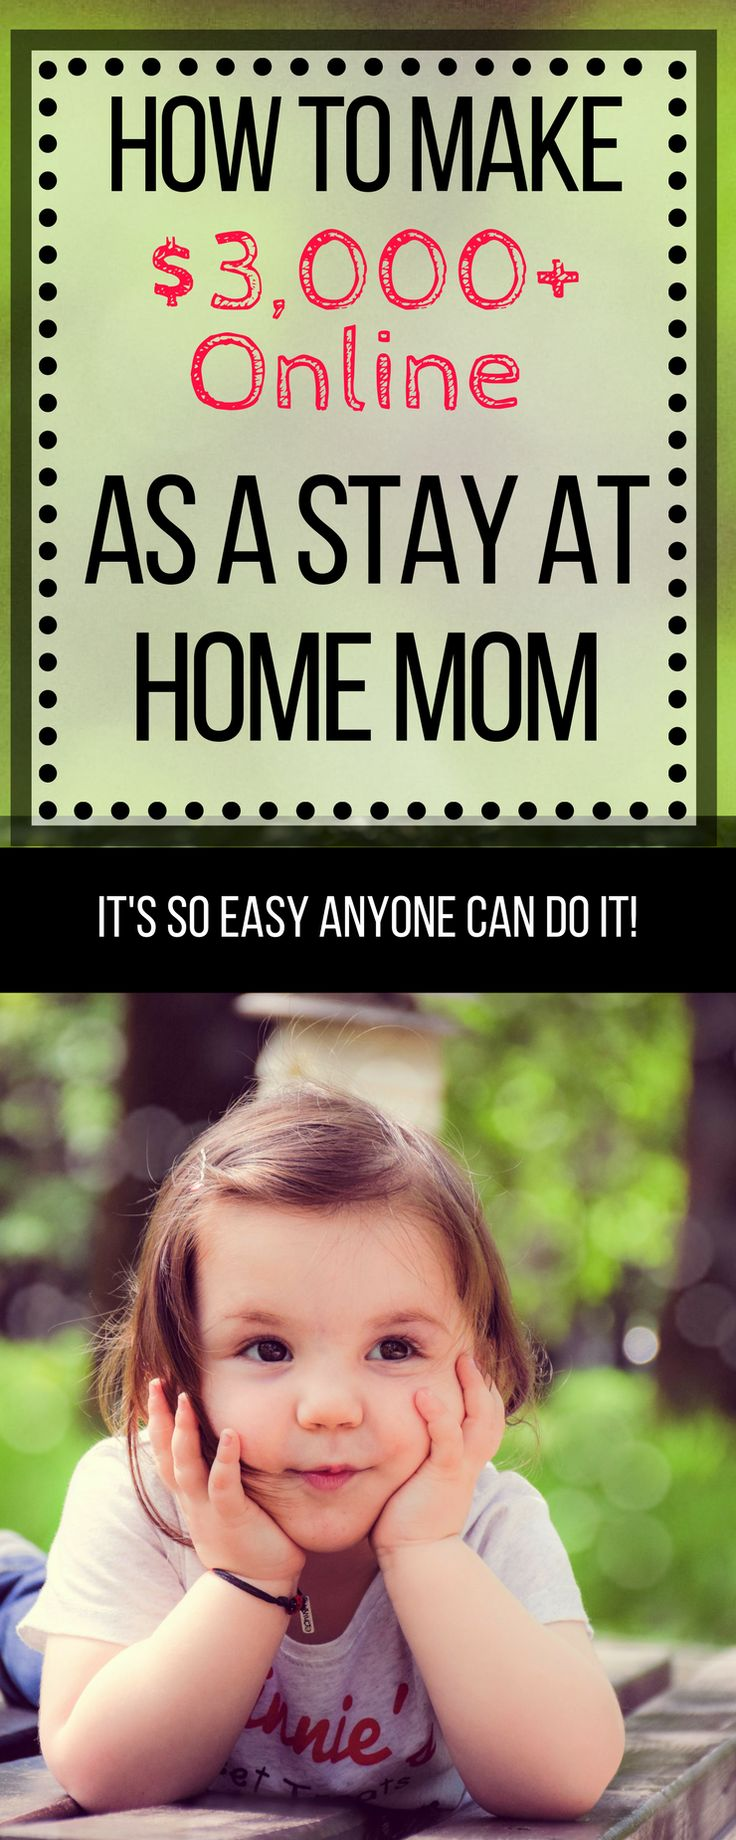 Ways To Earn Money From Home in 2018. How to make money as a stay at home mom! #SAHM #makemoneyonline #SAHMjobs